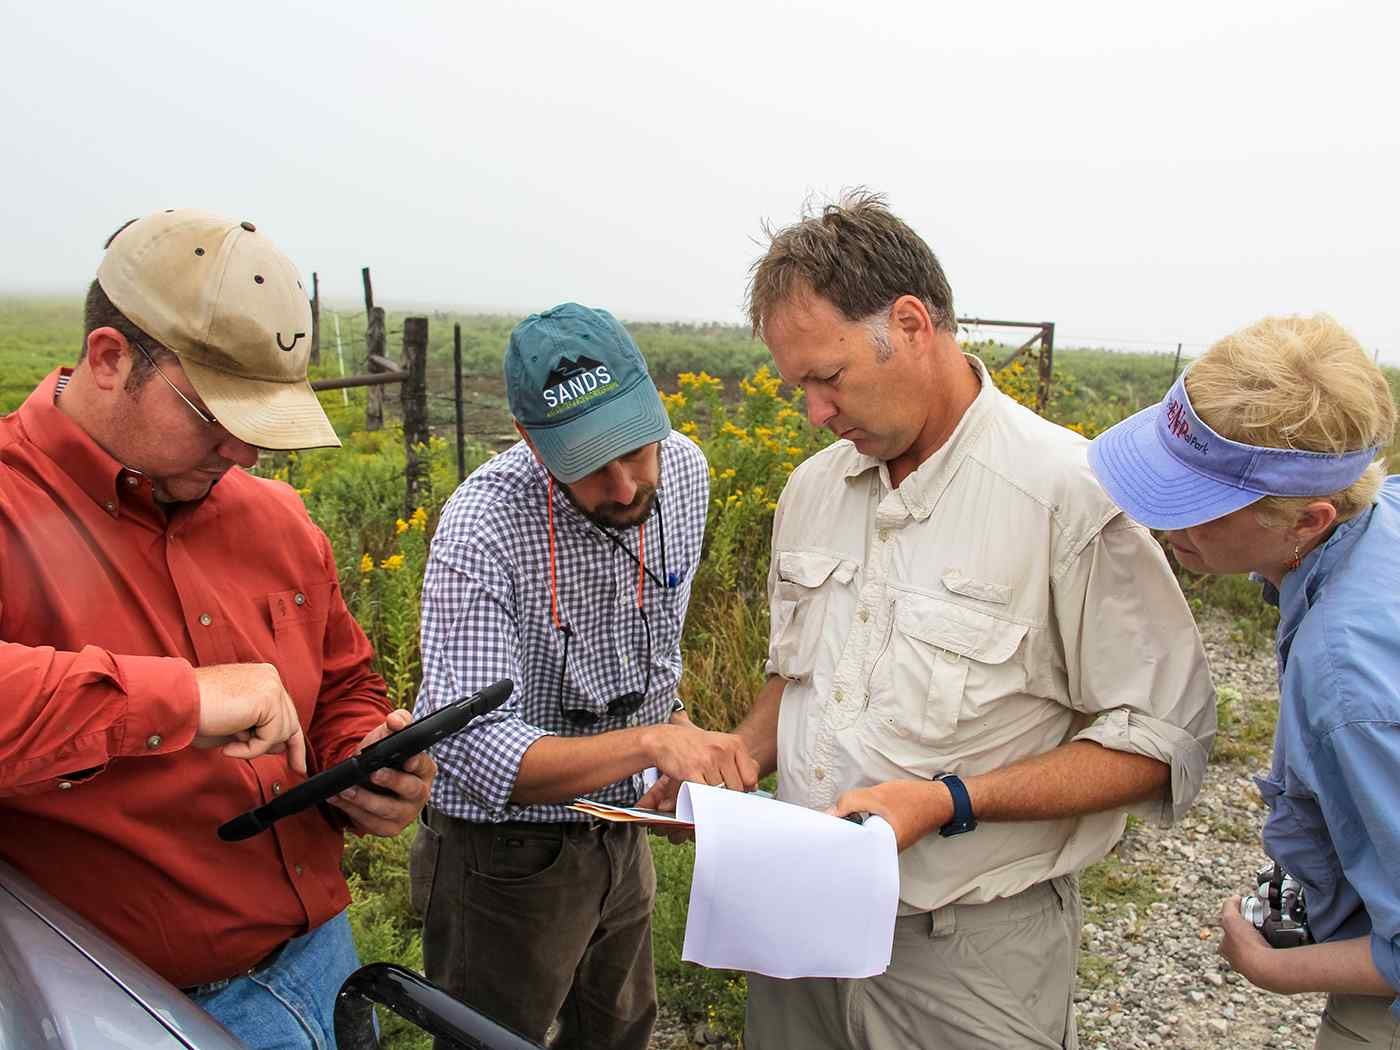 Students working in the field.